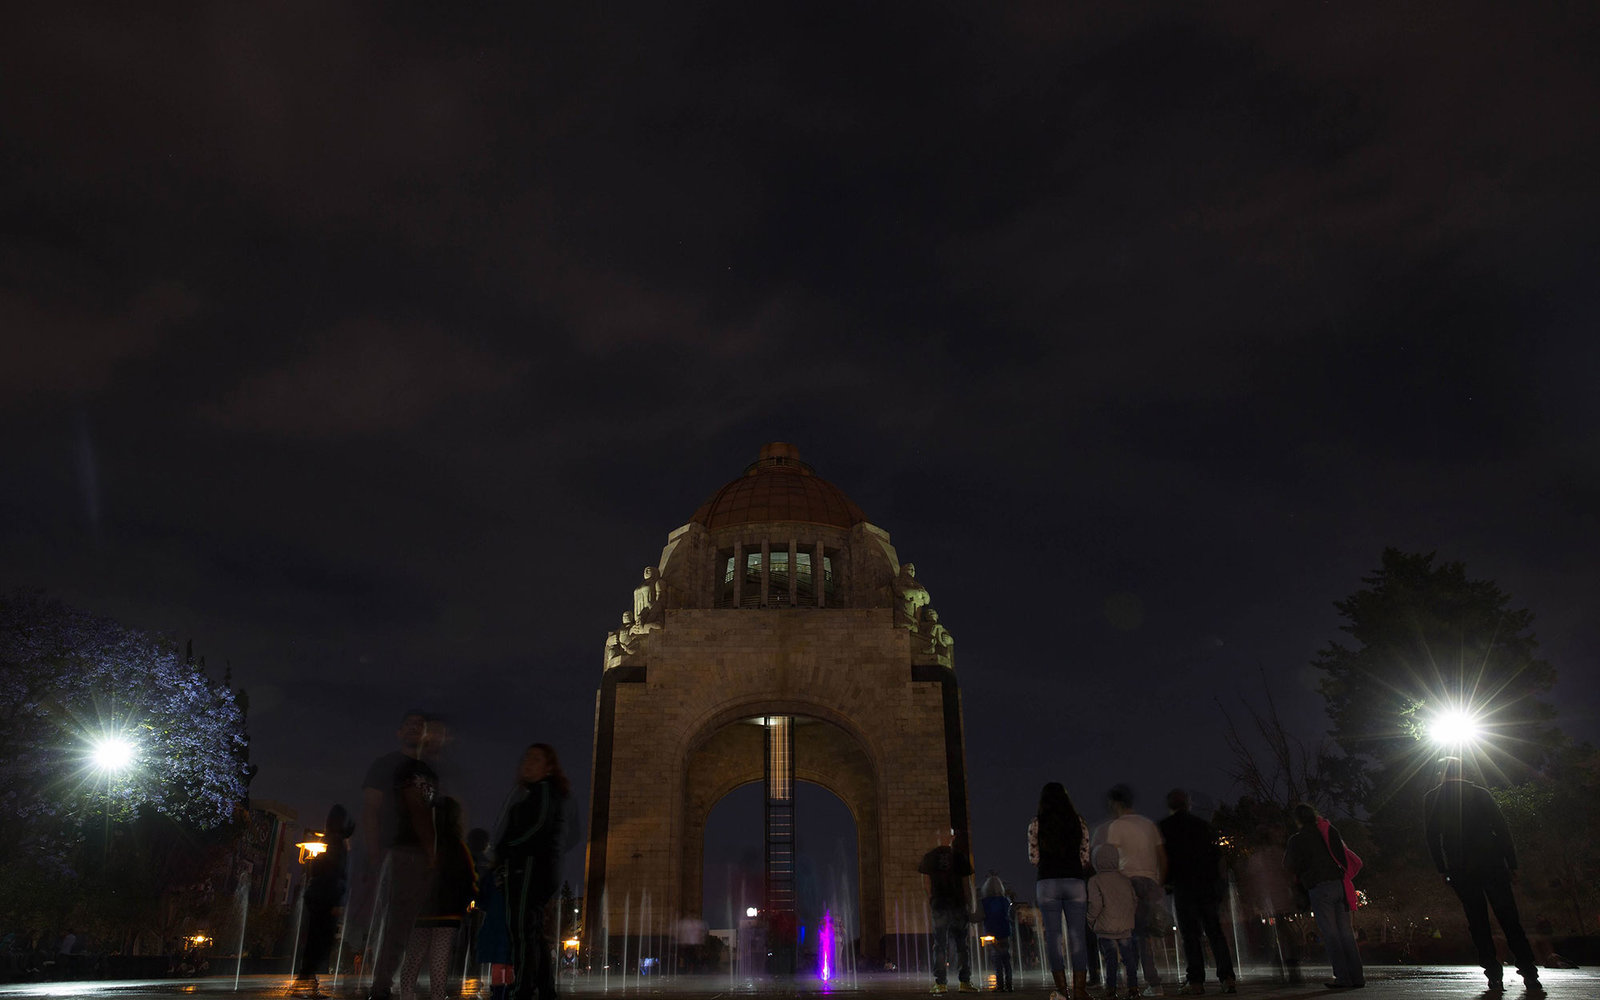 MEXICO CITY, MEXICO -  MARCH 19 : Monumento a la Revolucion is seen after its lights were turned off during the Earth Hour event organized by the World Wide Fund for Nature (WWF) to draw attention to global climate change on March 19, 2016 in Mexico City,